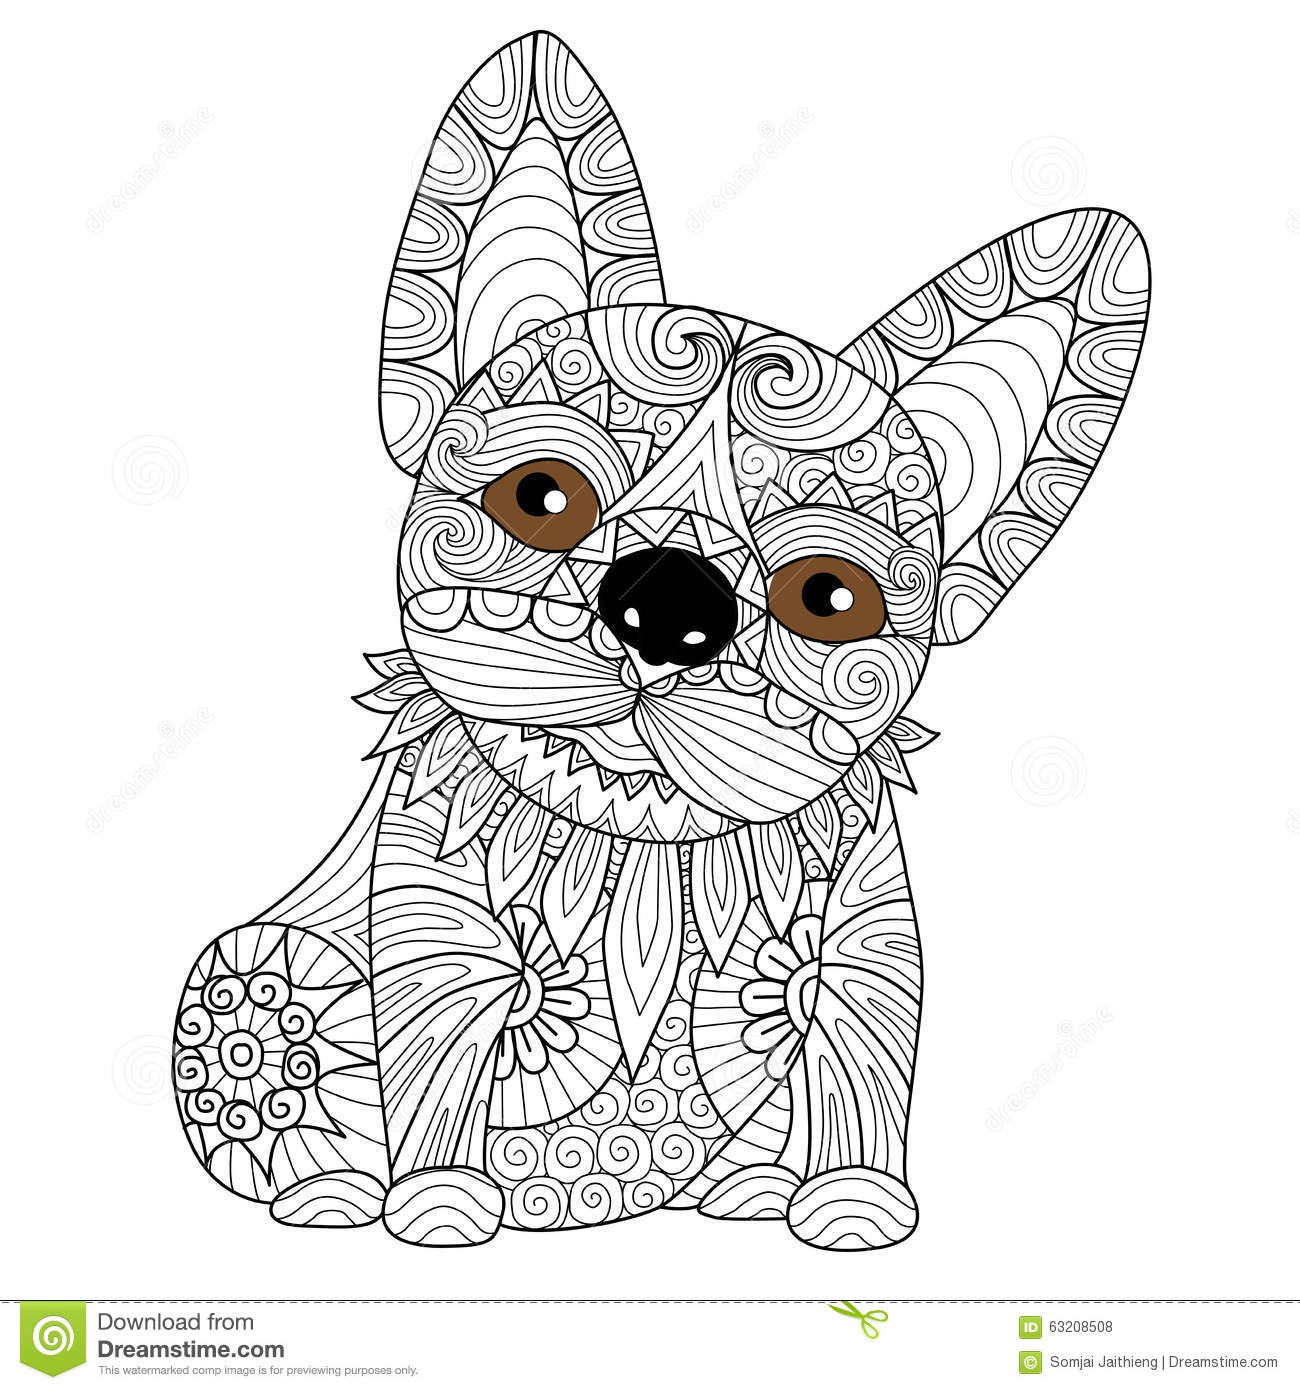 Peaceful Paisleys Adult Coloring Book 31 Stress Relieving Chiot Tir 233 Par La Main De Bouledogue Pour Livre